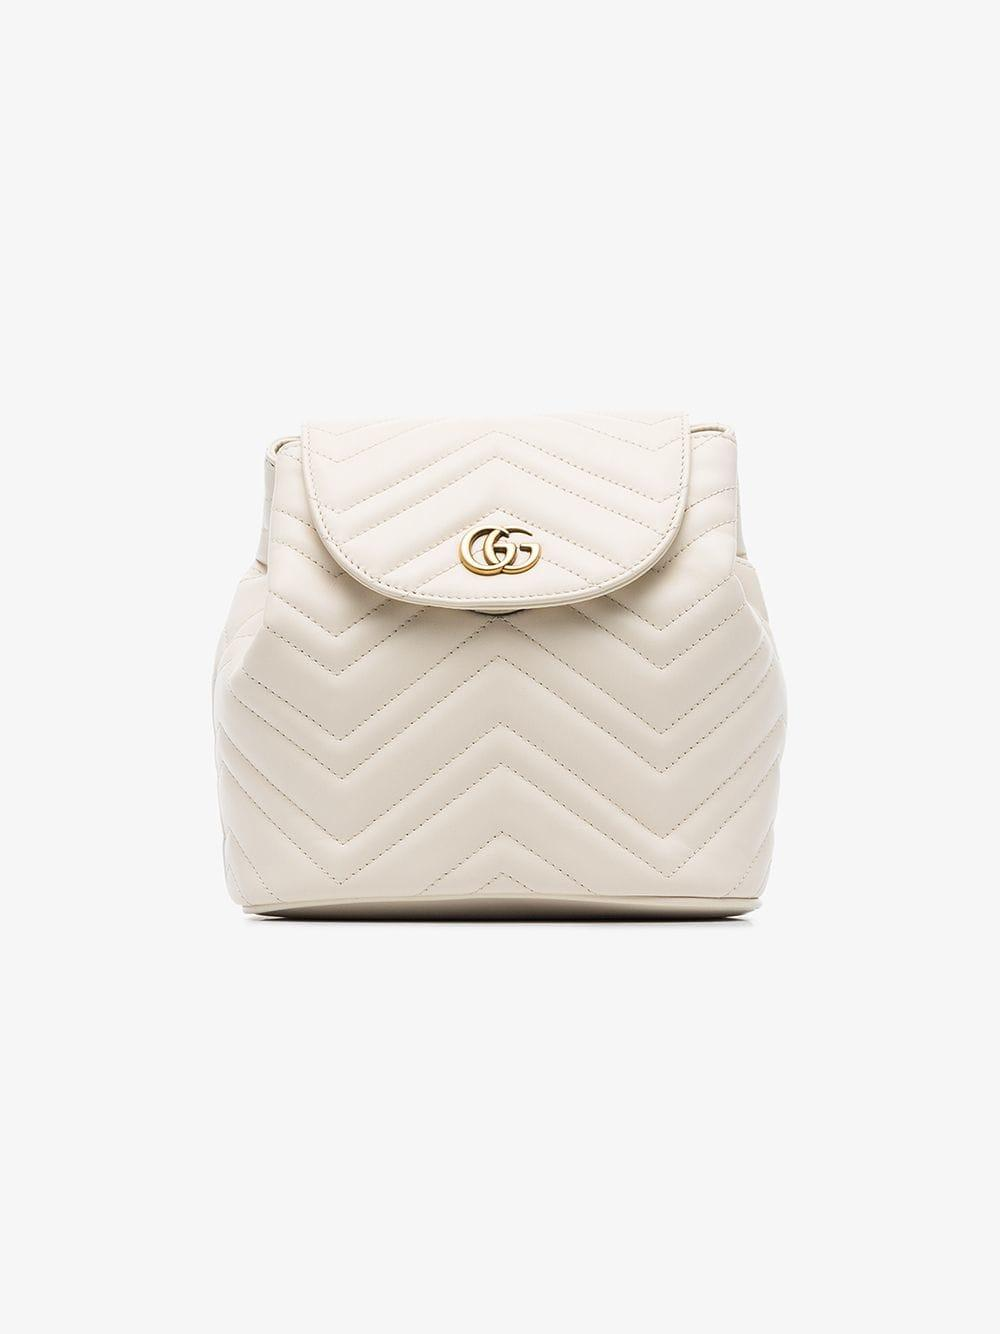 97355ea7498d Gucci - Multicolor White Marmont Matelassé Leather Backpack - Lyst. View  fullscreen